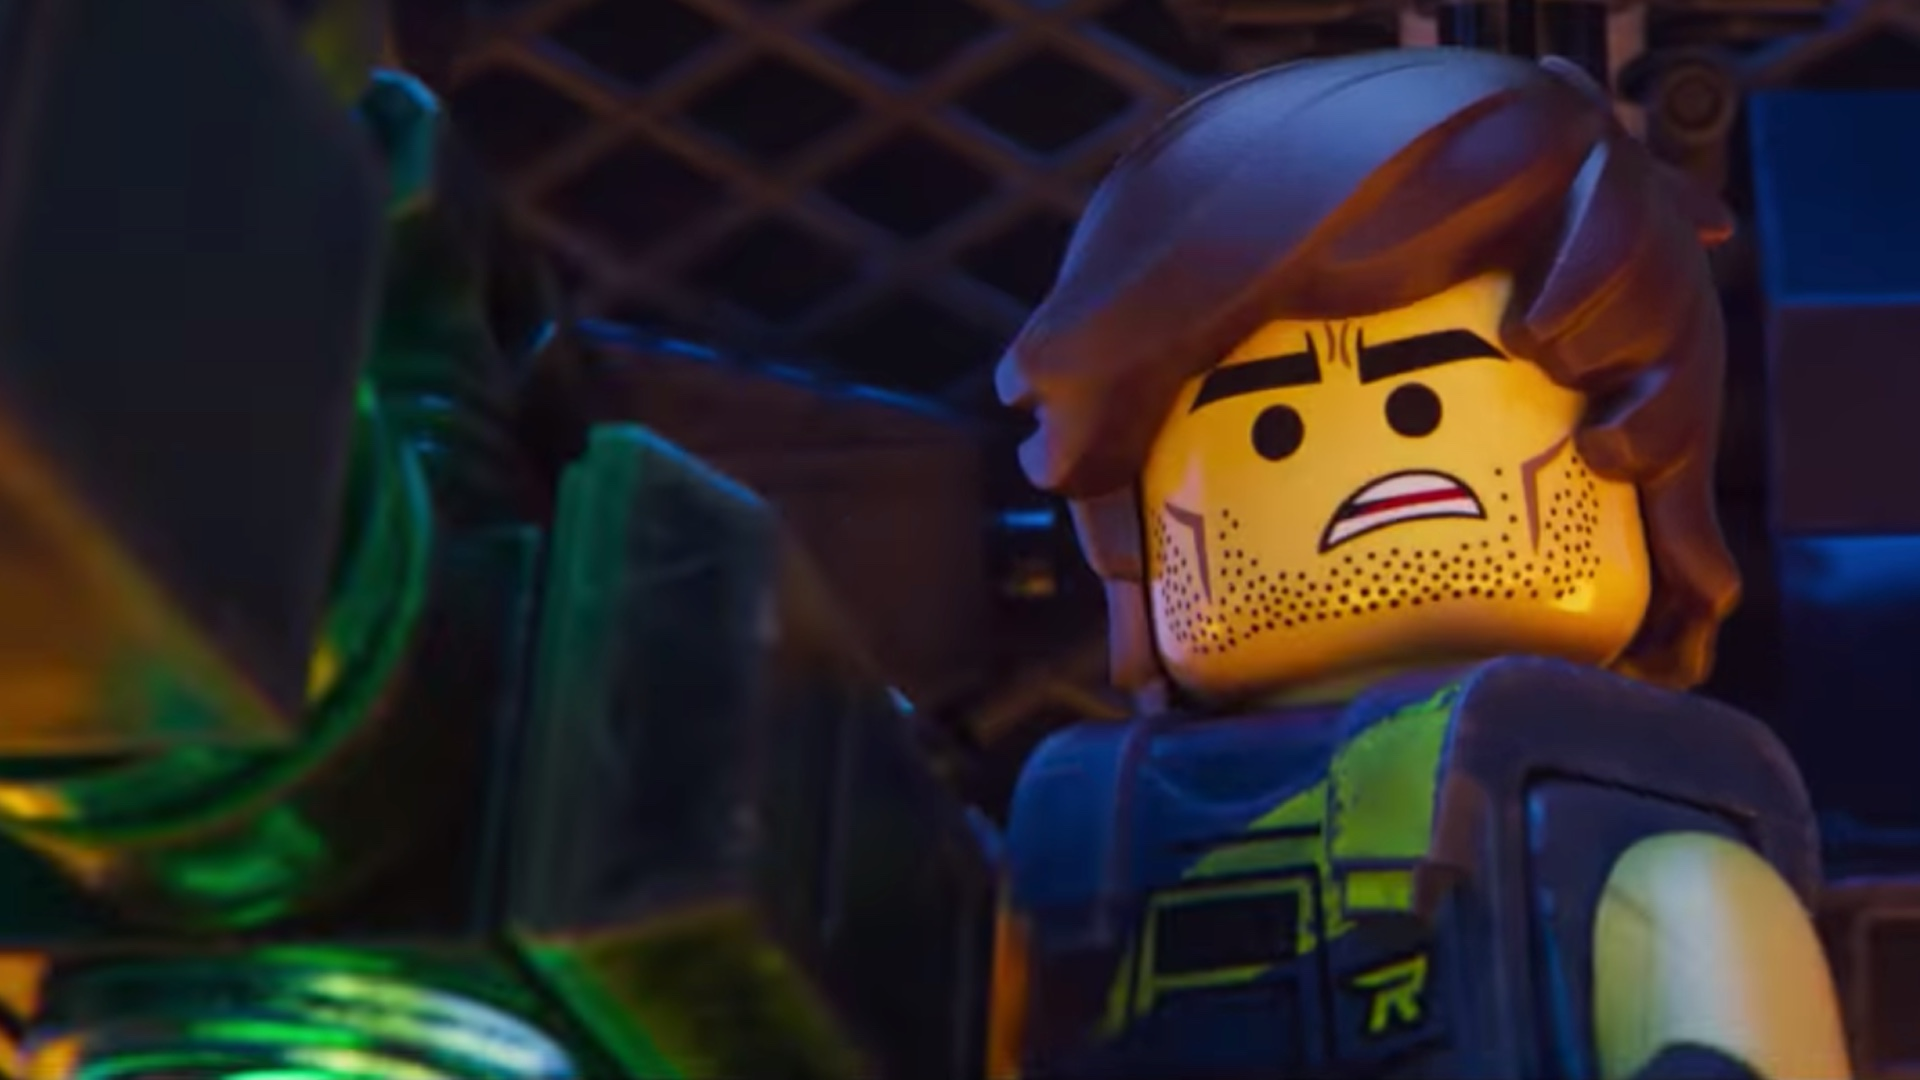 The New Trailer For The Lego Movie 2 The Second Part Takes Us On An Awesome Intergalactic Adventure Geektyrant